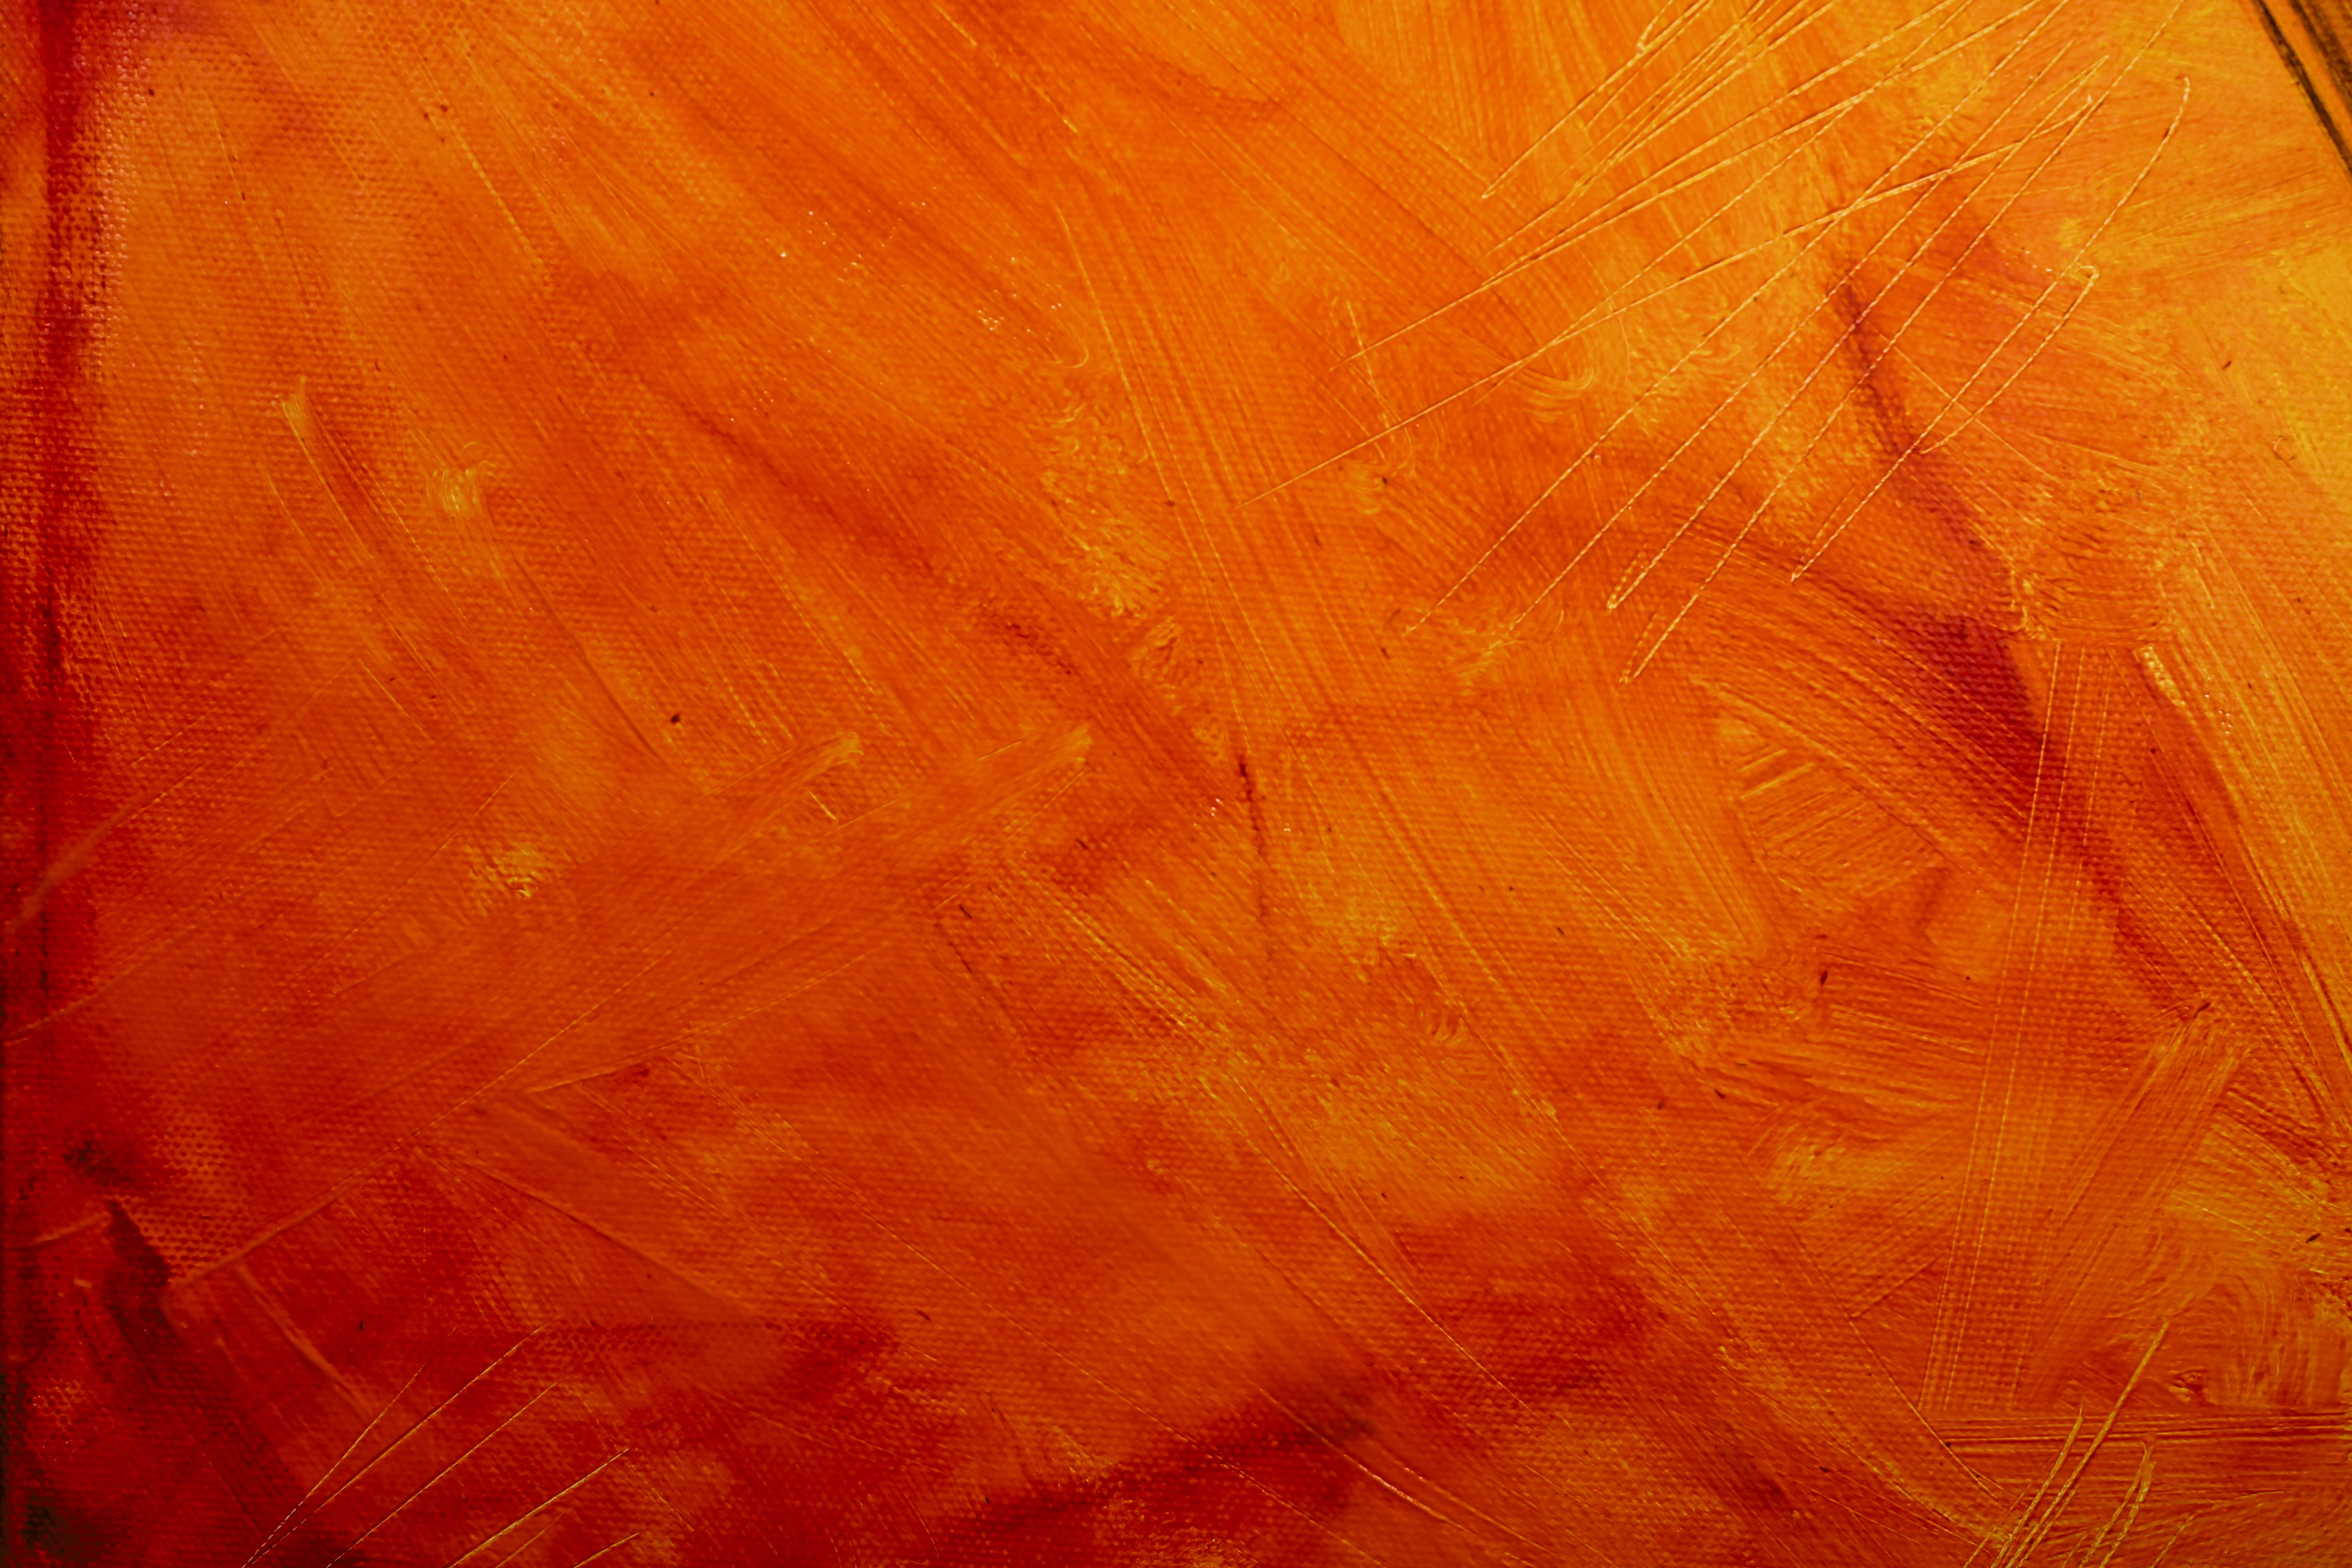 Free stock photo of abstract background, art, art background, artwork